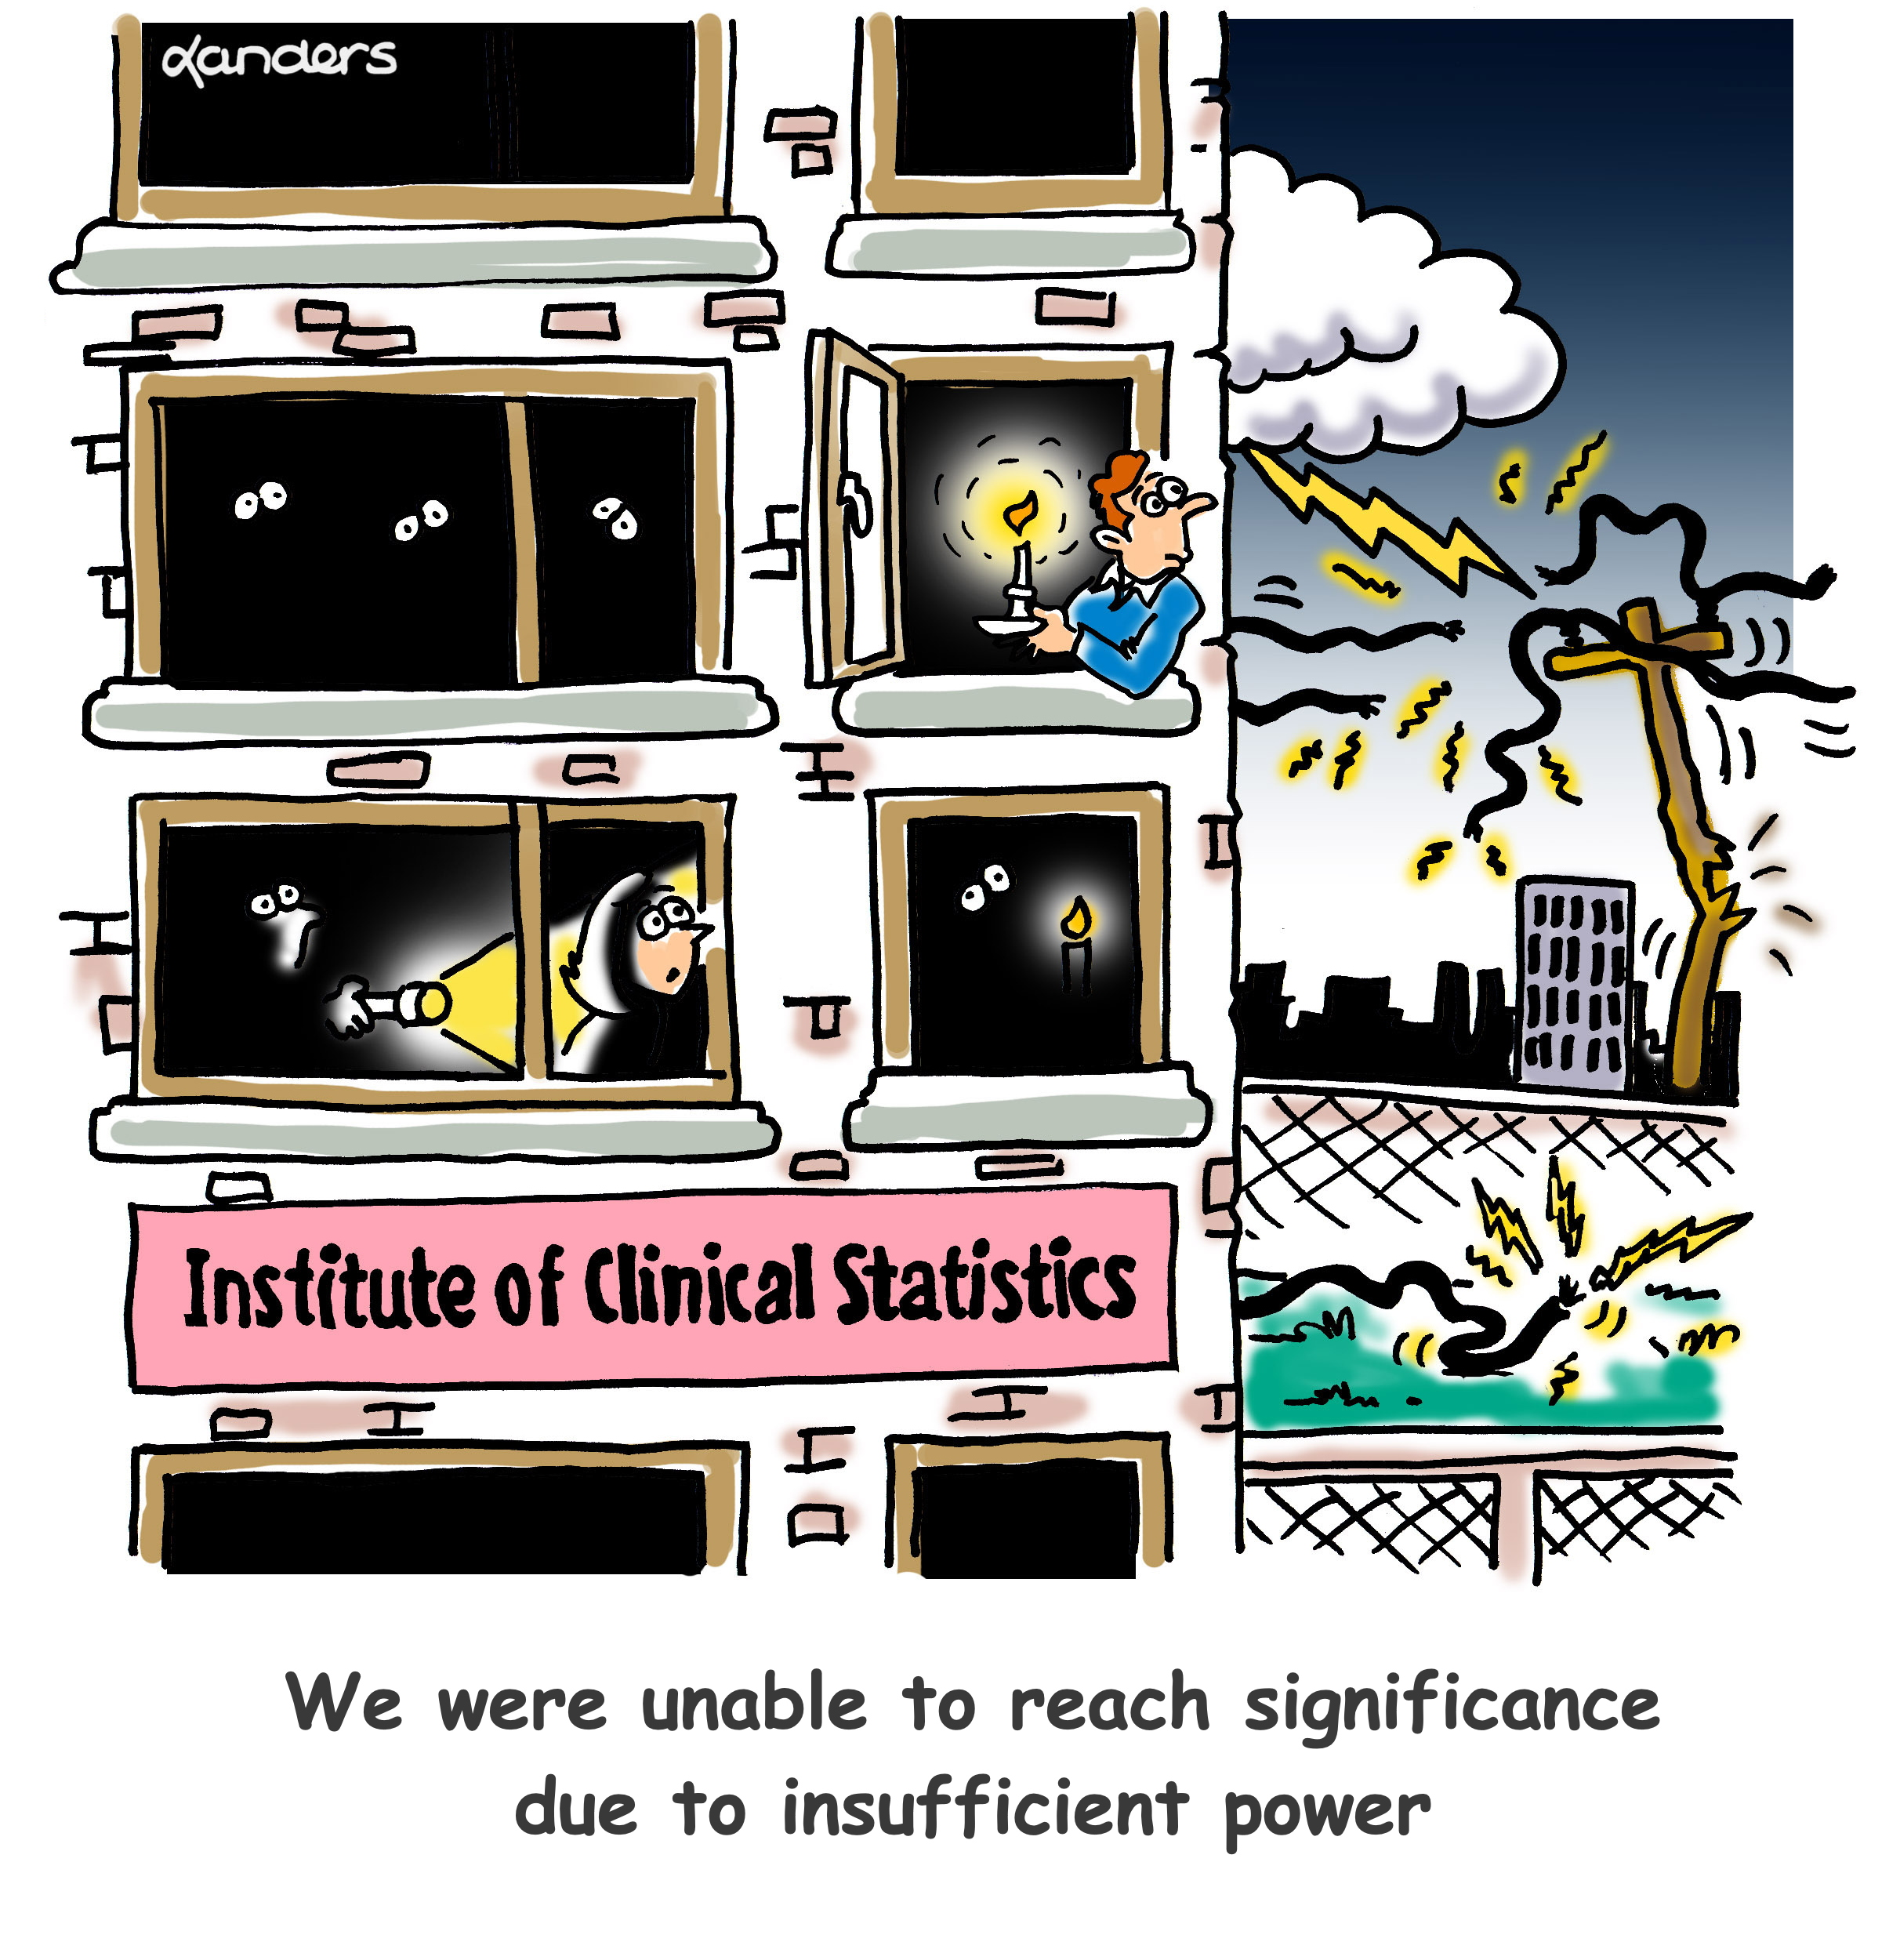 cartoon showing a power outage at a statistics institute